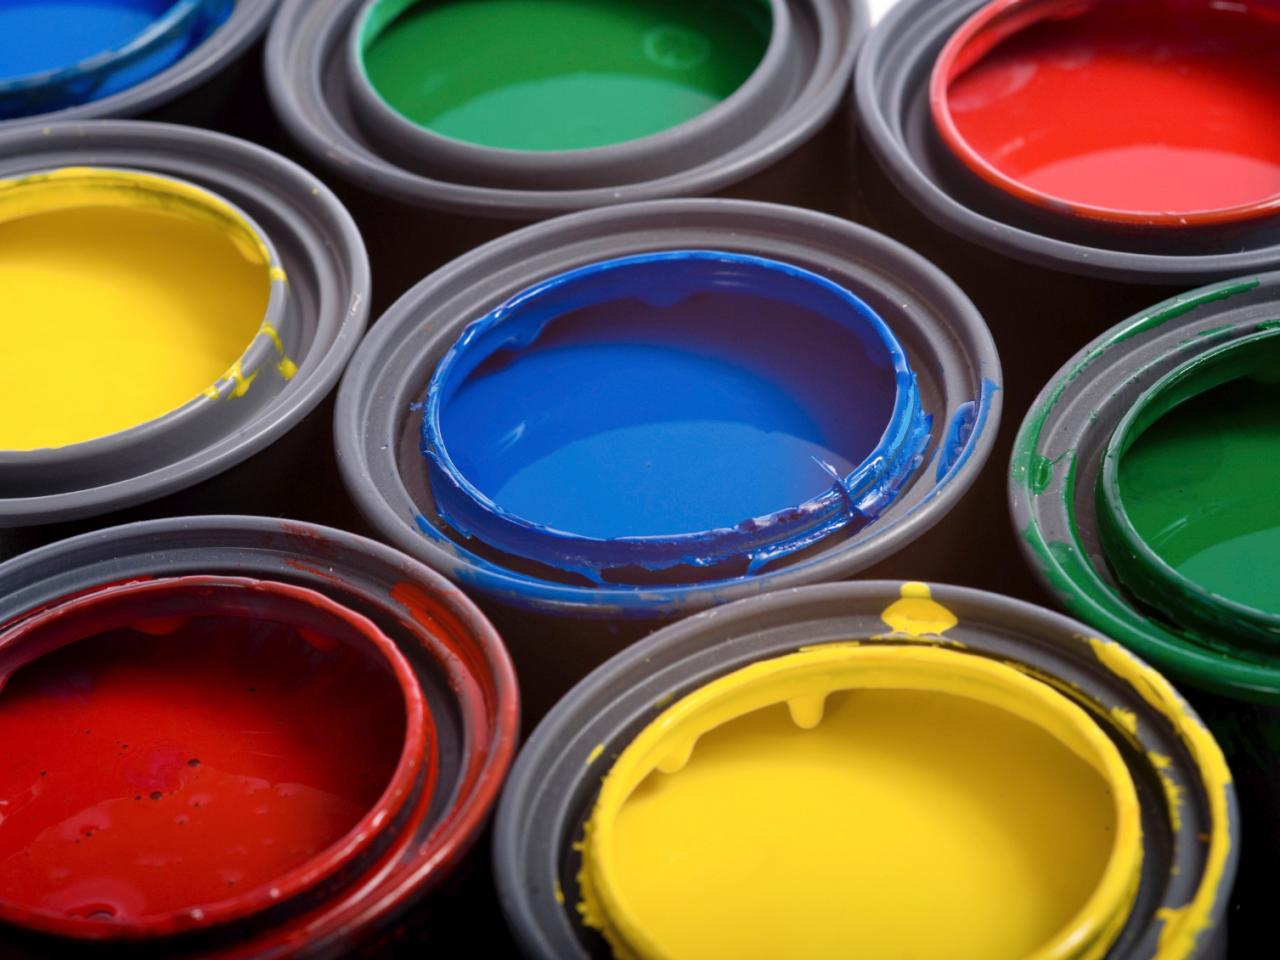 Paint Glossary: All About Paint, Color And Tools